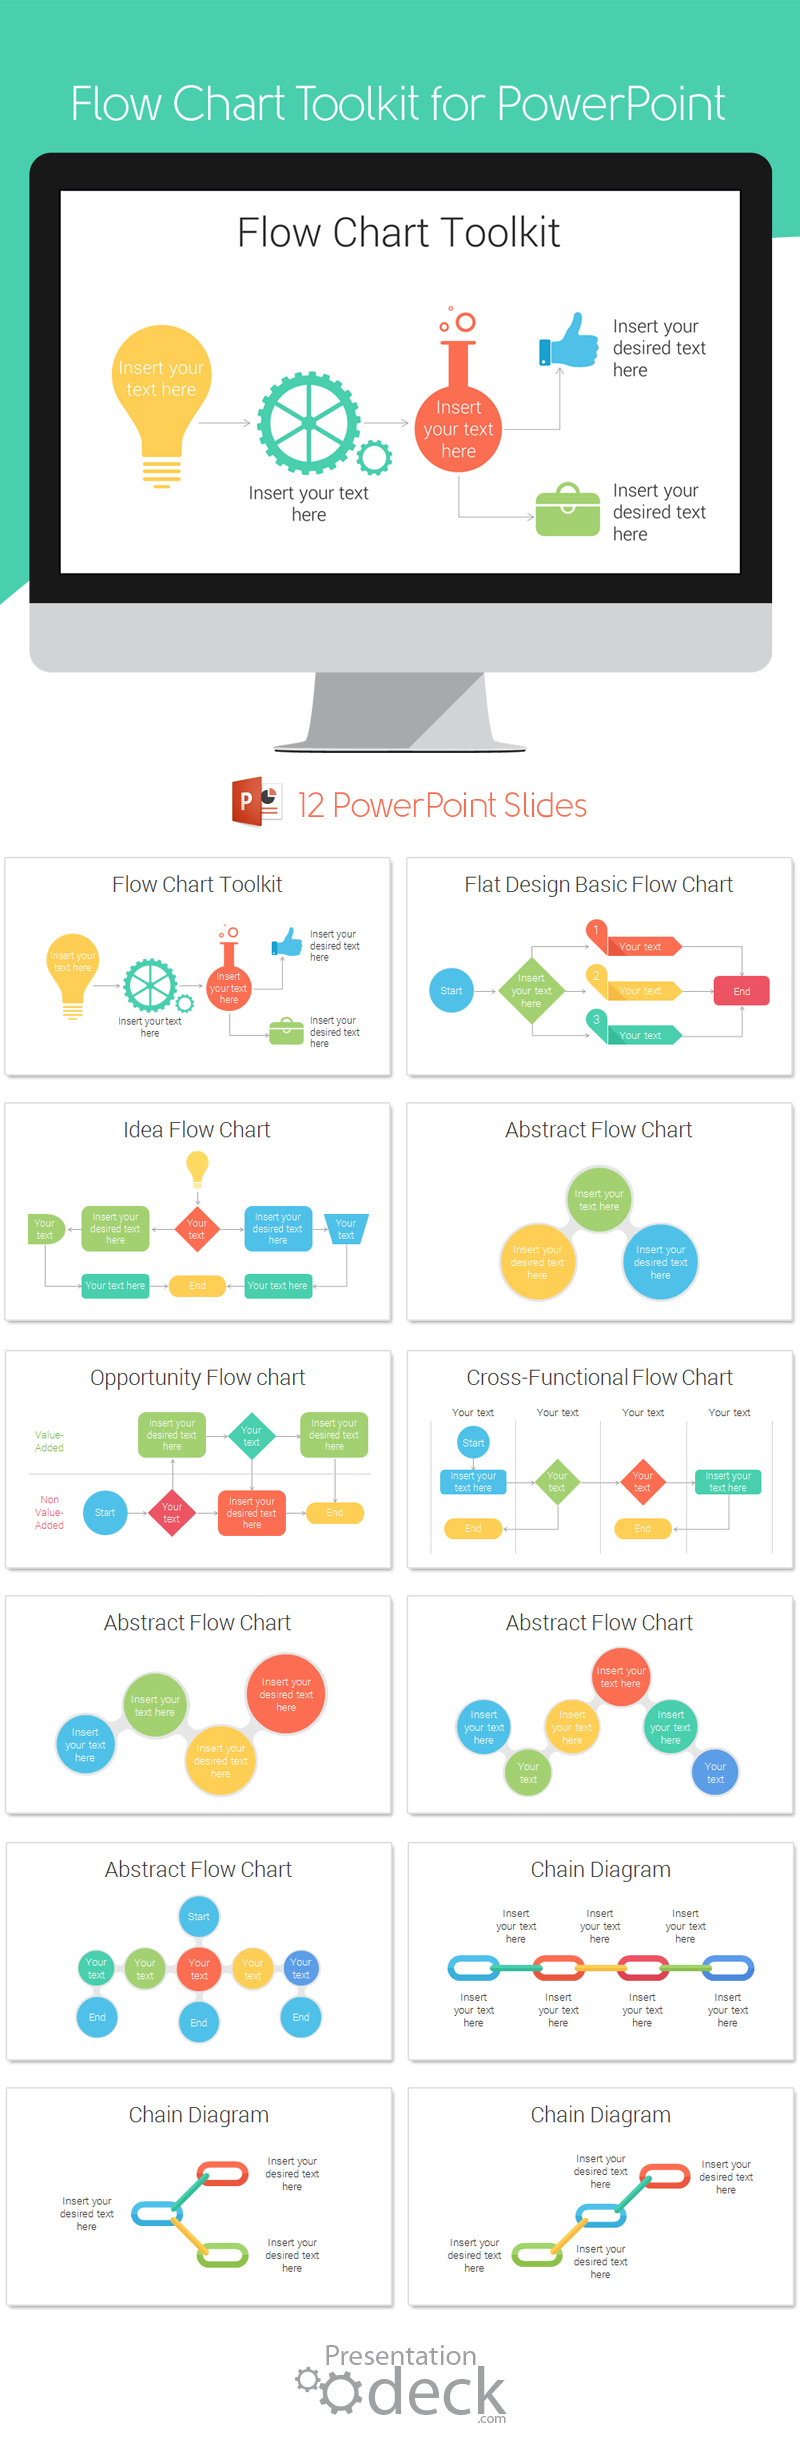 hight resolution of flow chart toolkit powerpoint template with 12 pre designed slides with colorful infographics